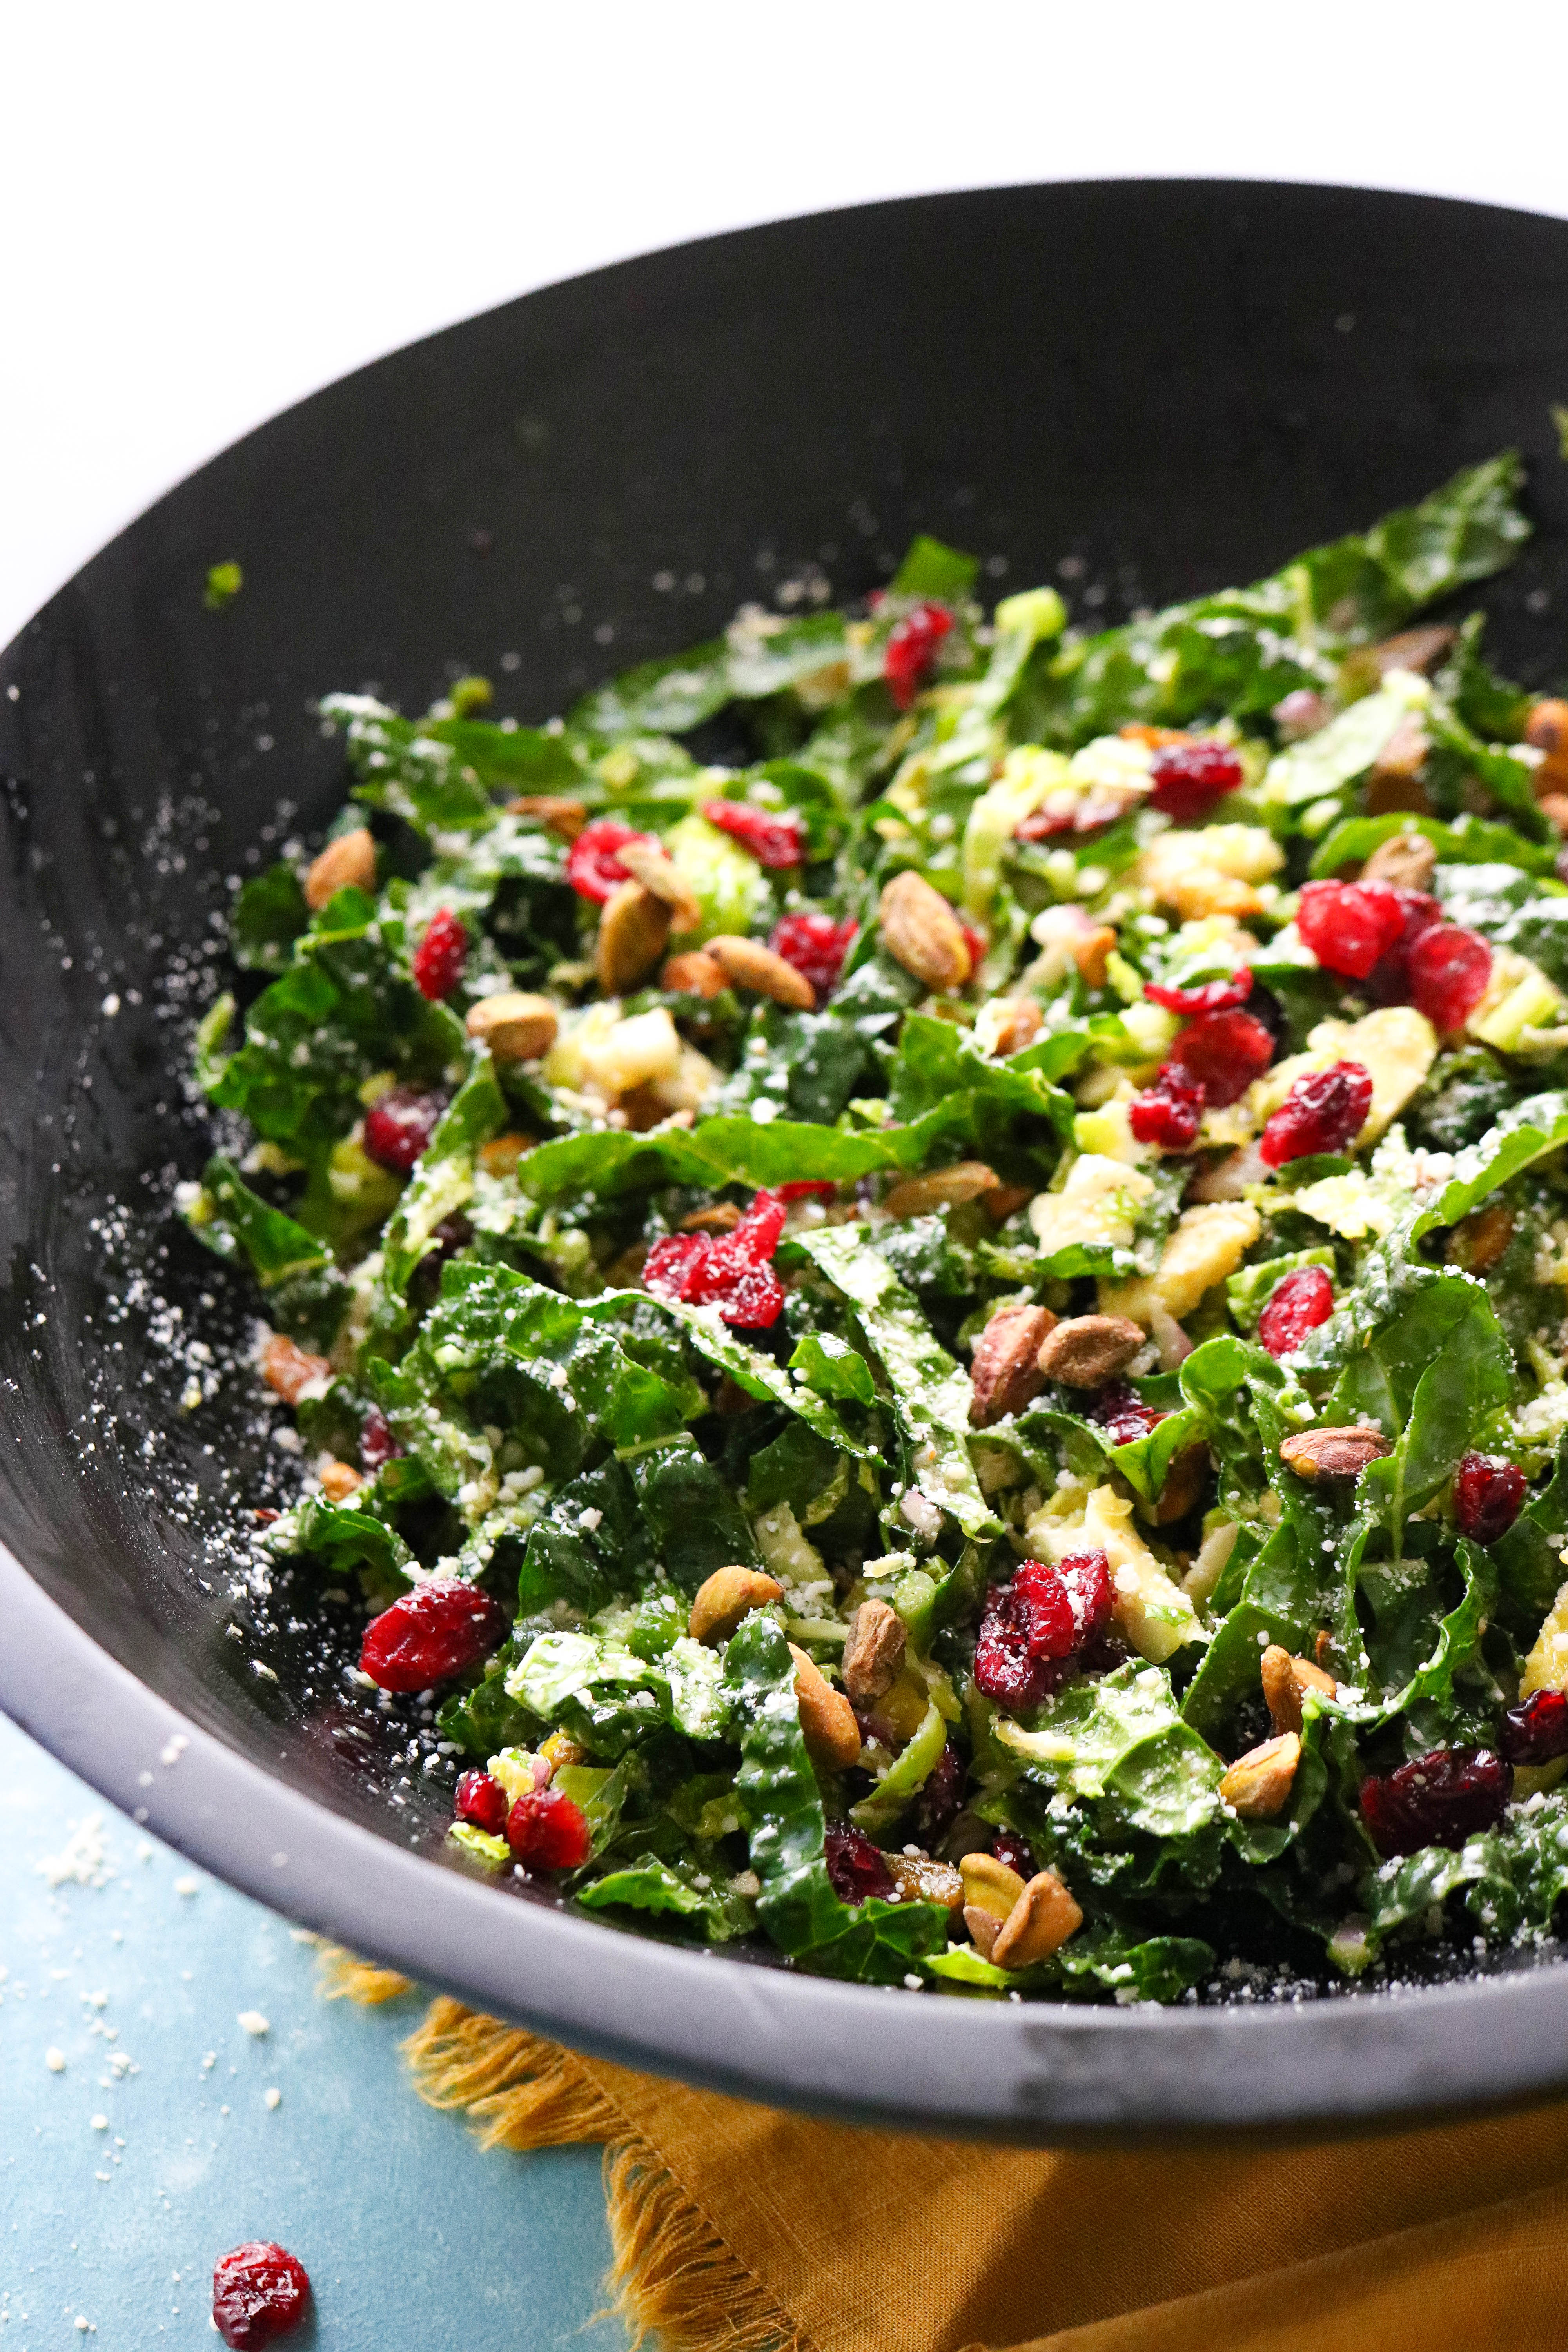 Dark round salad bowl filled with shredded kale snd Brussel sprout salad with dried cranberries and pistachios sprinkled in.